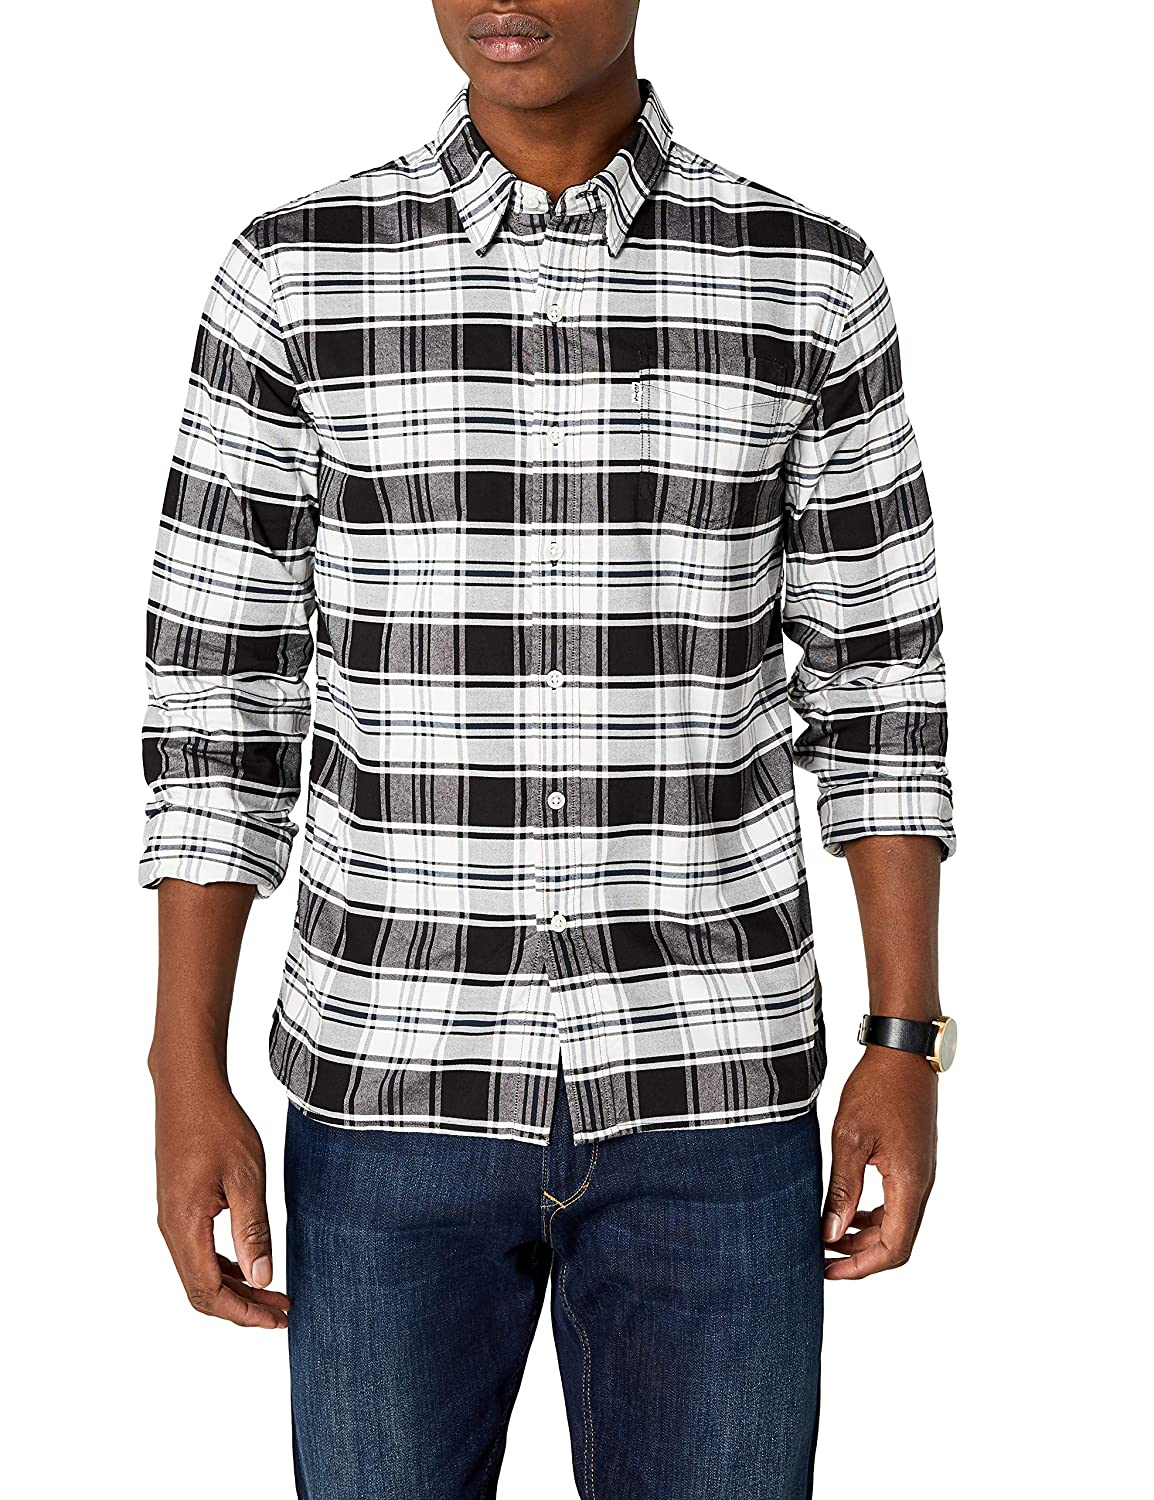 Levi's Sunset 1 Pocket Shirt, Camisa Casual para Hombre